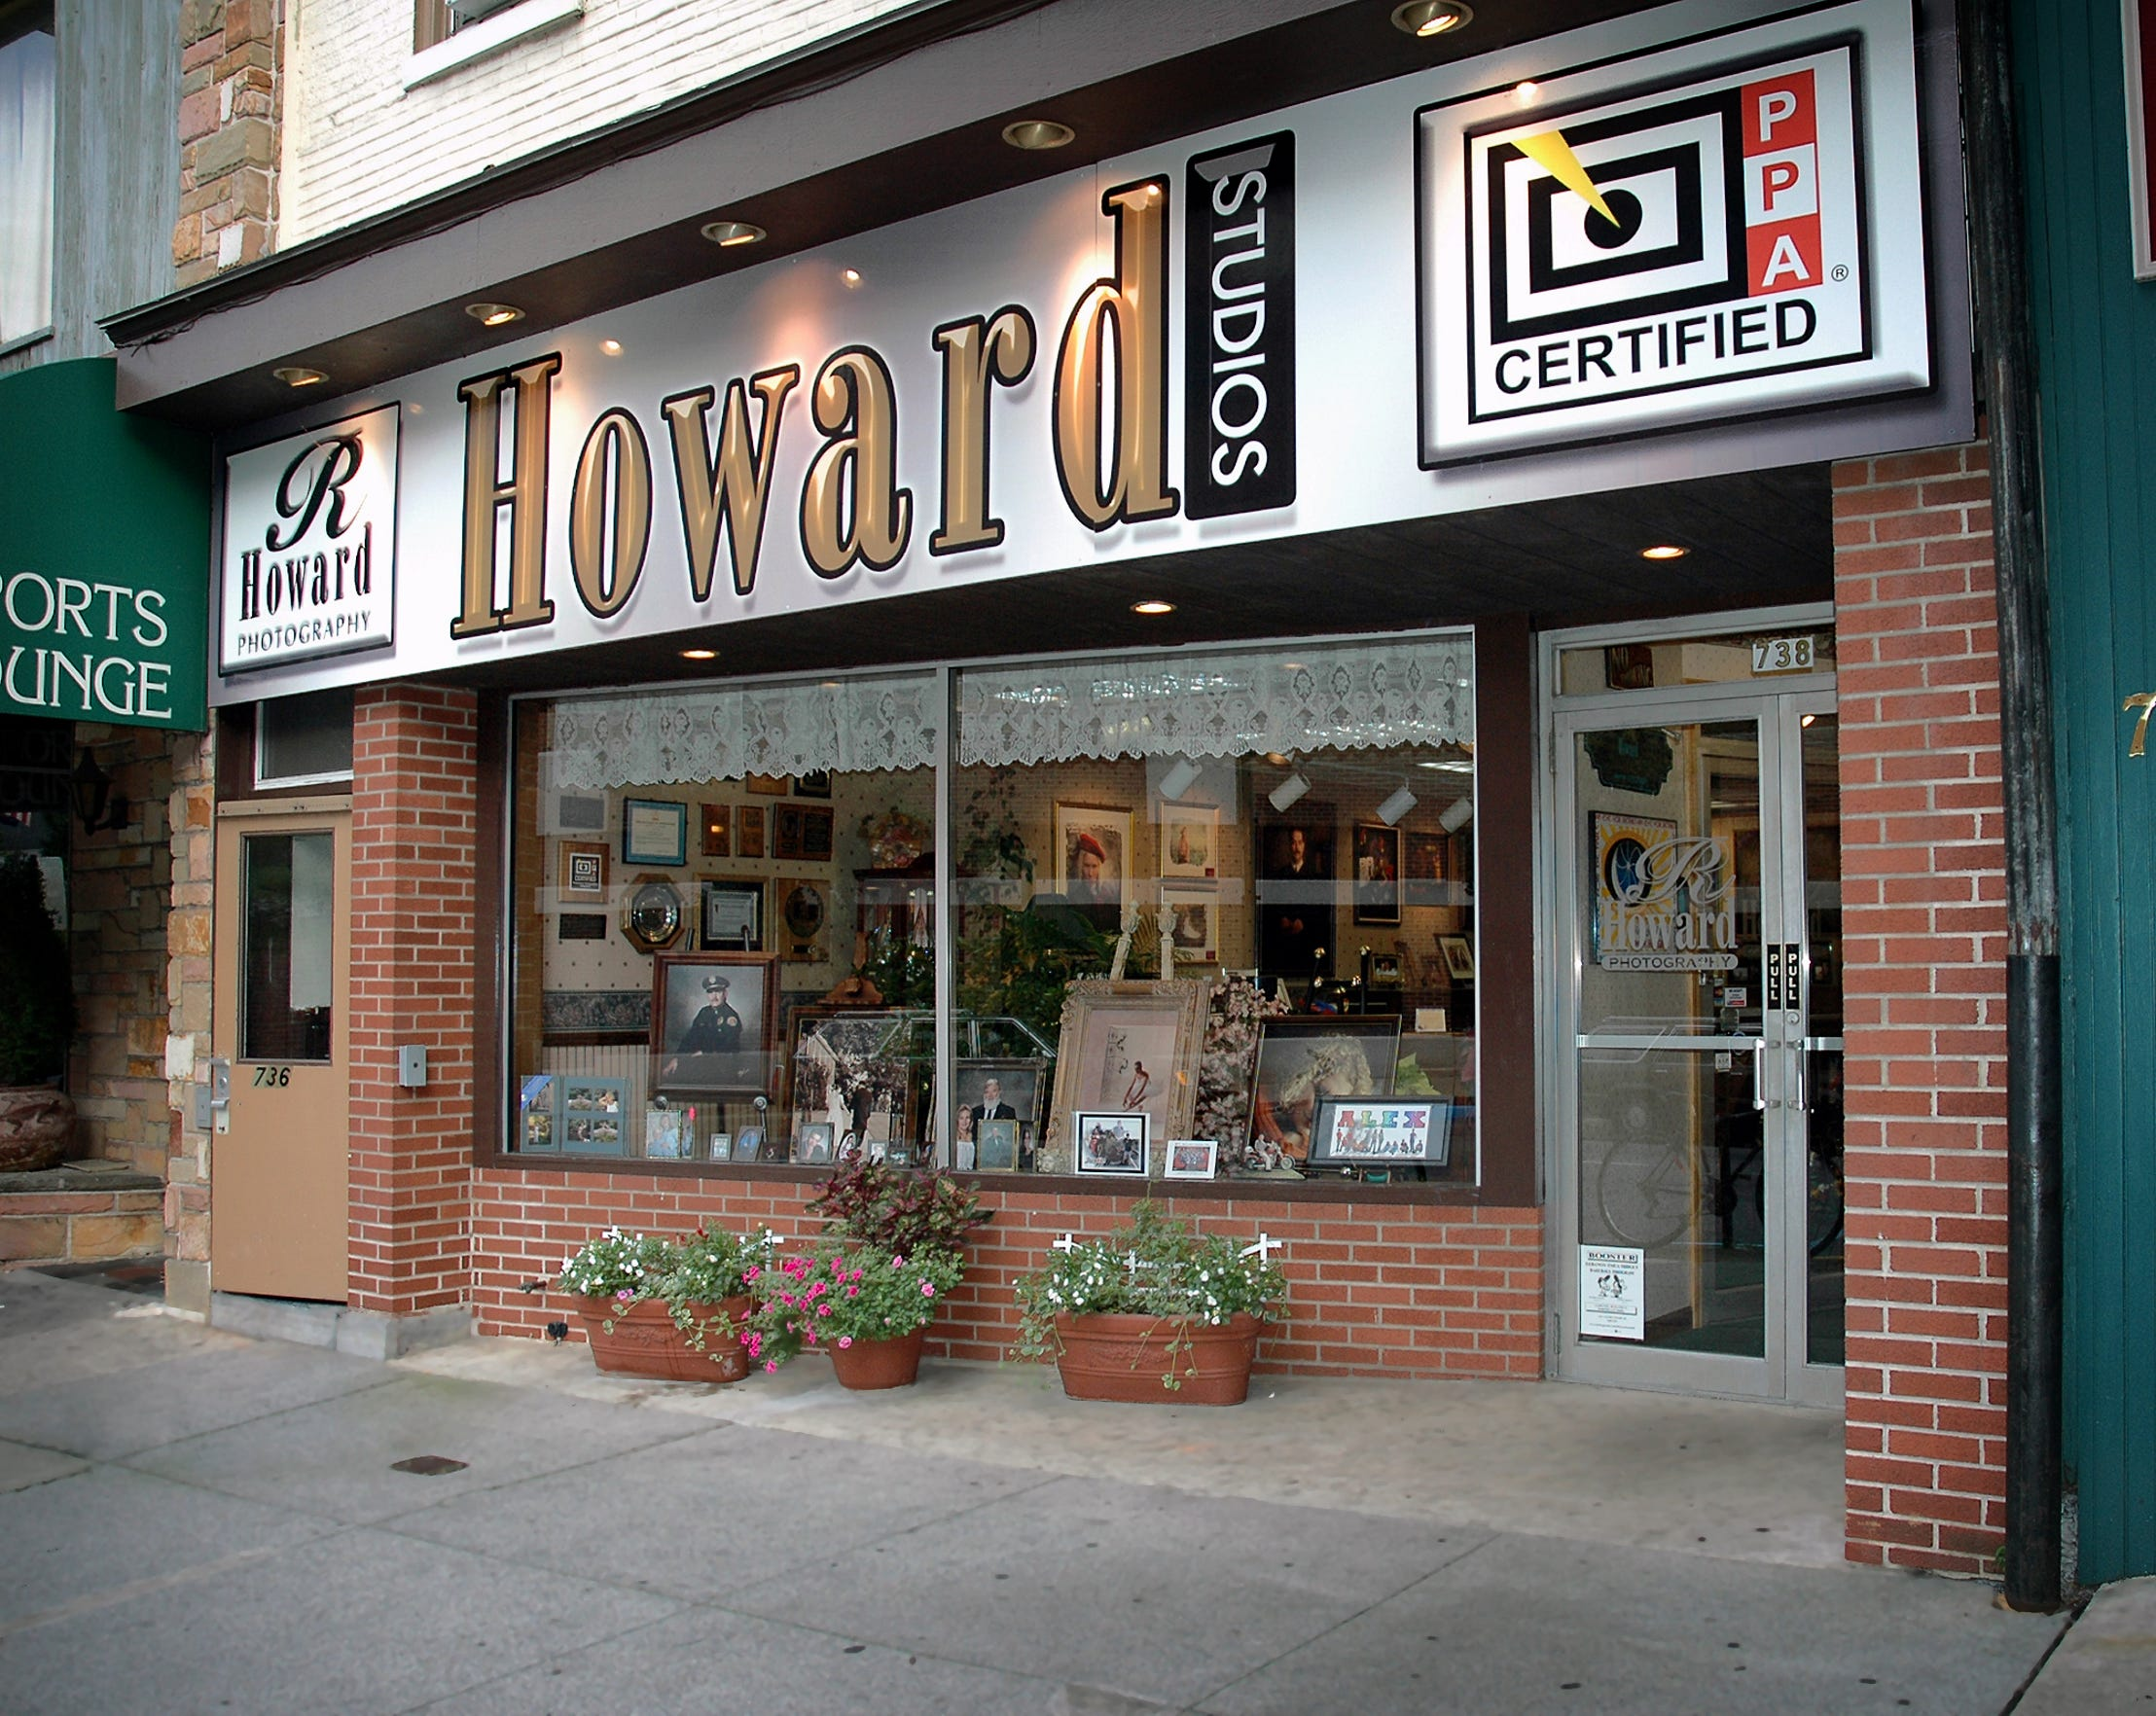 Howard Studios at 738 Cumberland Street, pictured when it was new in 2005.